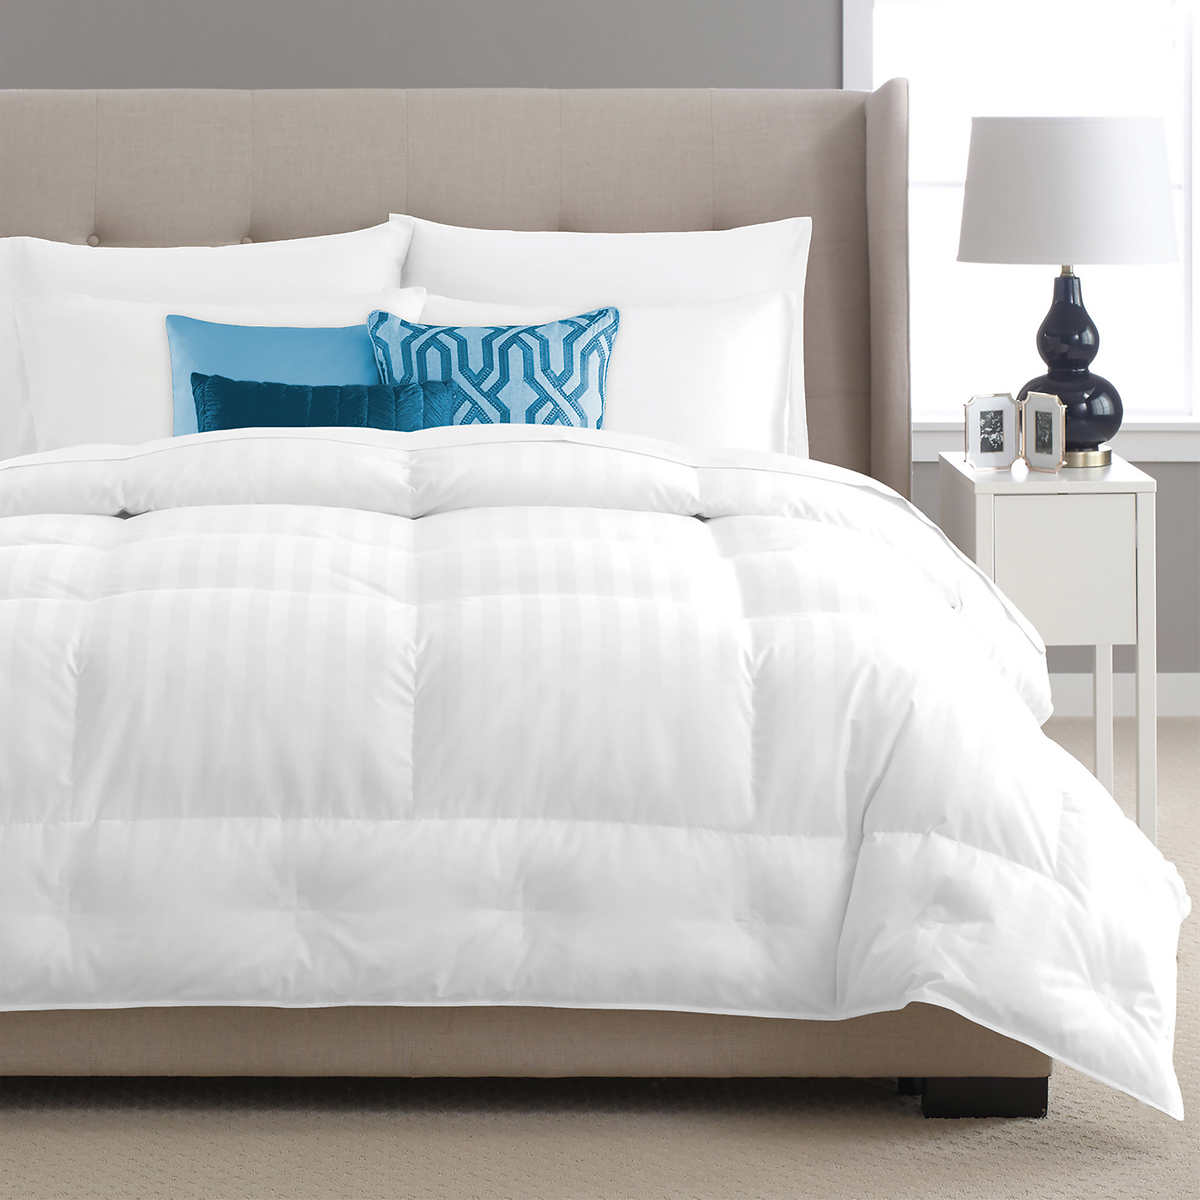 pacific coast european light warmth pyrnes down comforter full queen ebay. Black Bedroom Furniture Sets. Home Design Ideas